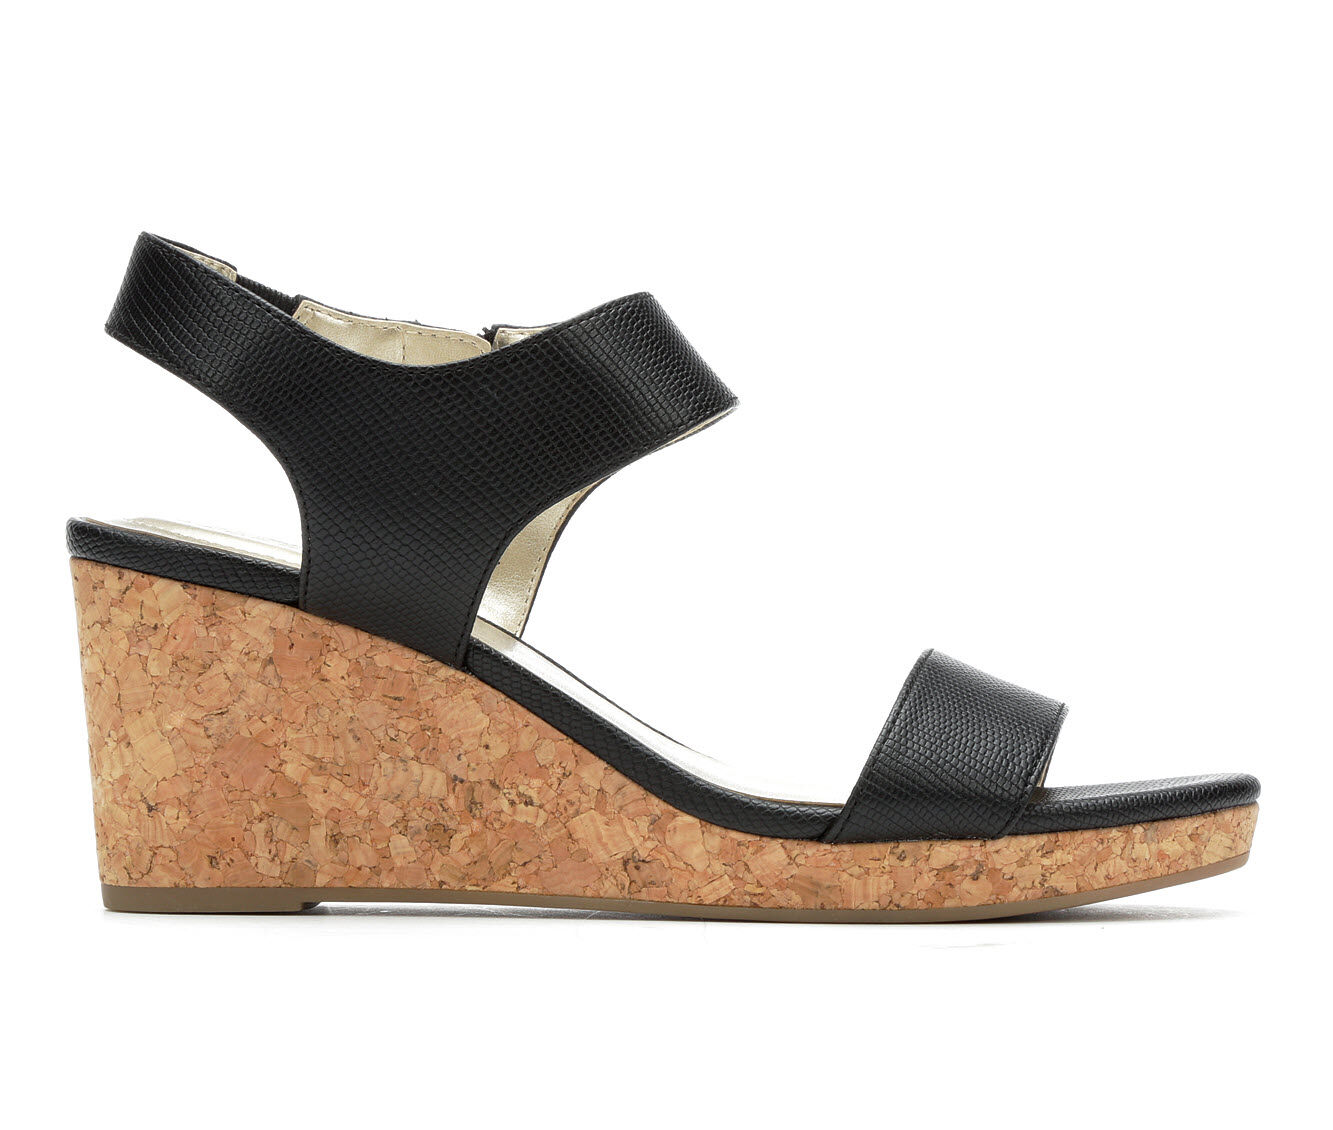 Women's Bandolino Tessa Wedges Black